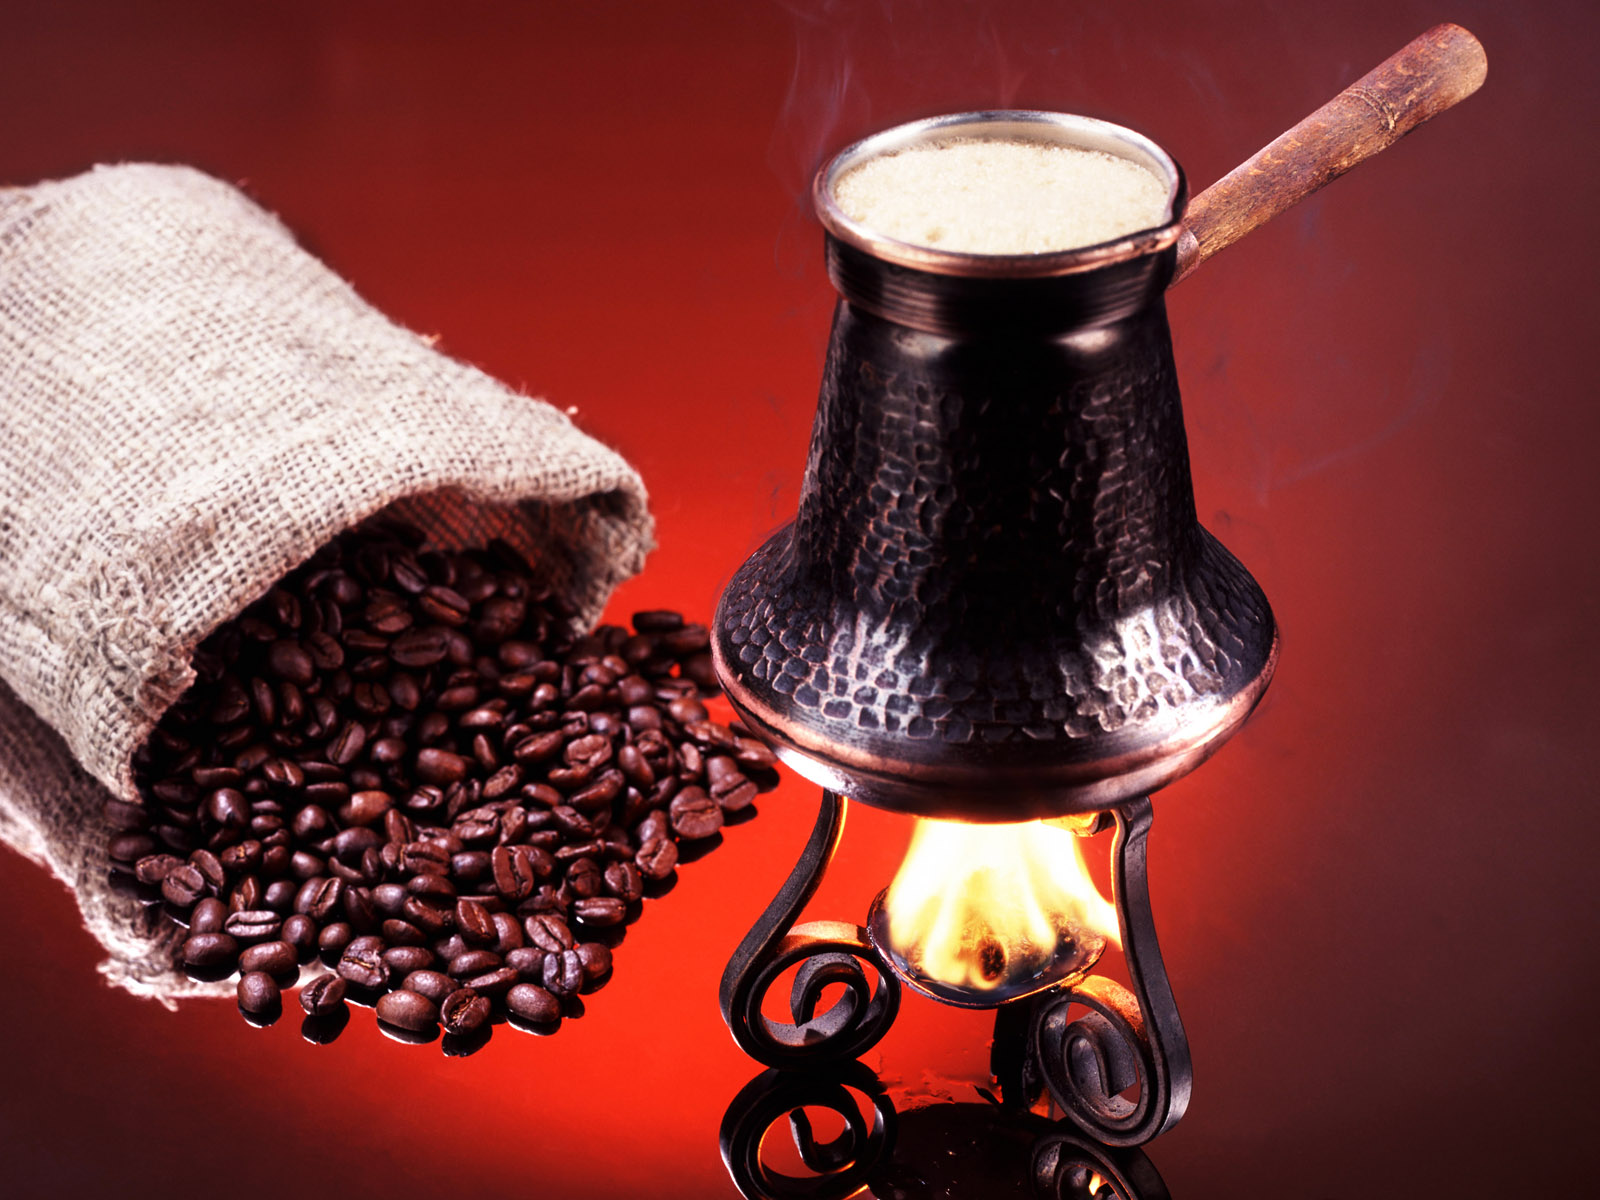 Coffee wallpaper high definition 12158